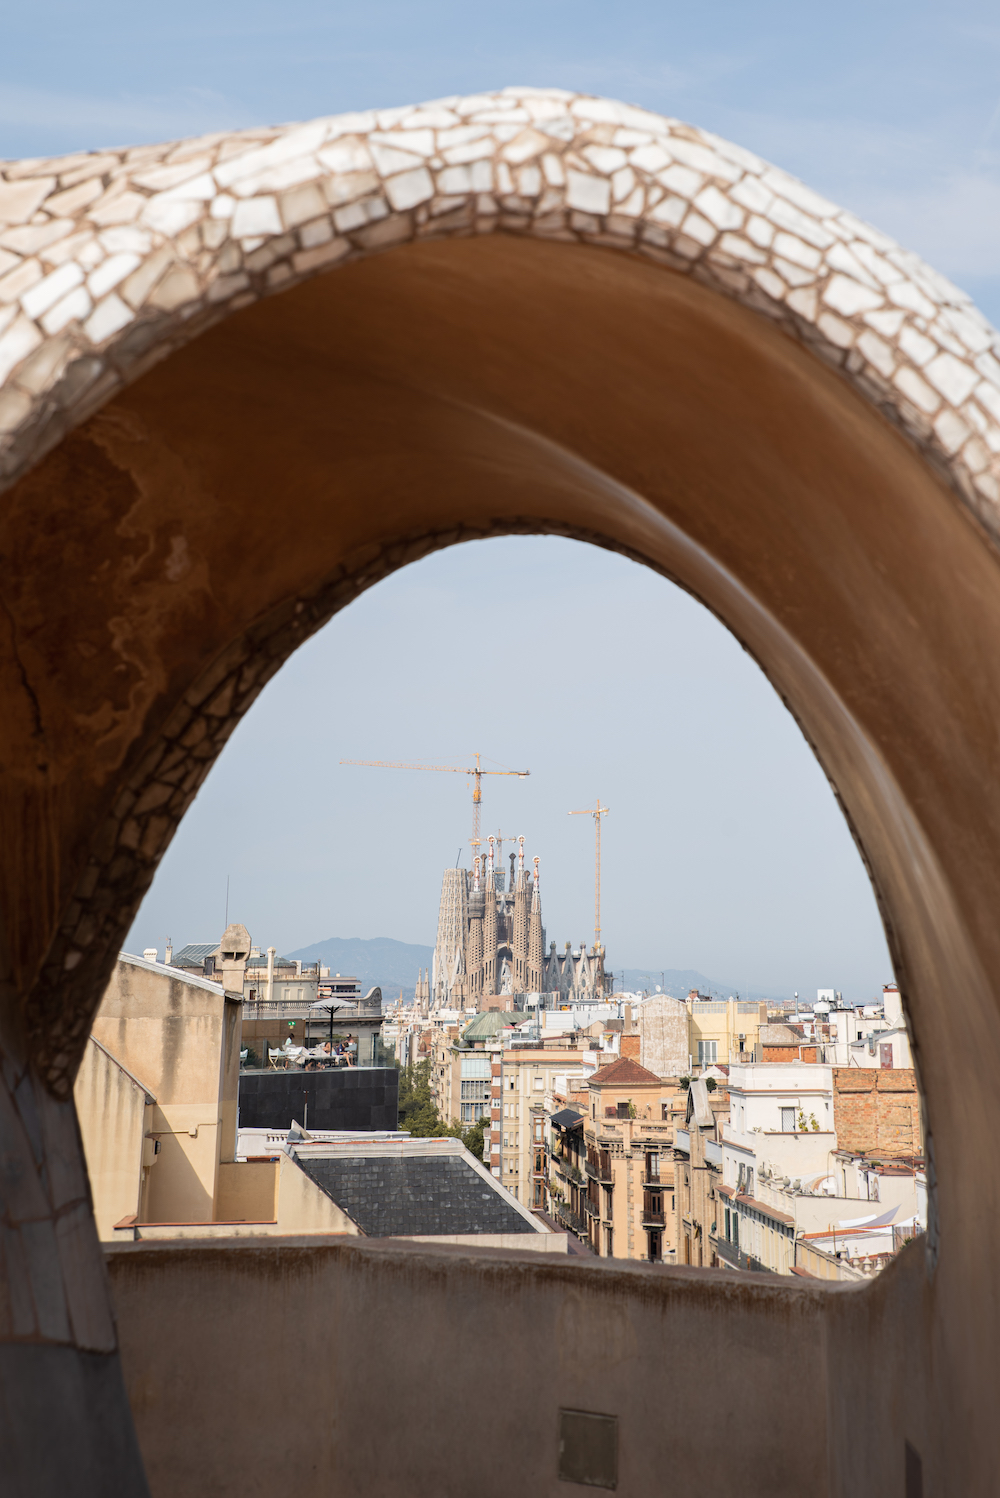 Antoni Gaudi's Casa Mila (aka La Pedrera) Modernista Architecture, Eixample, Barcelona - by Ben Holbrook from DrifftwoodJournals.com20